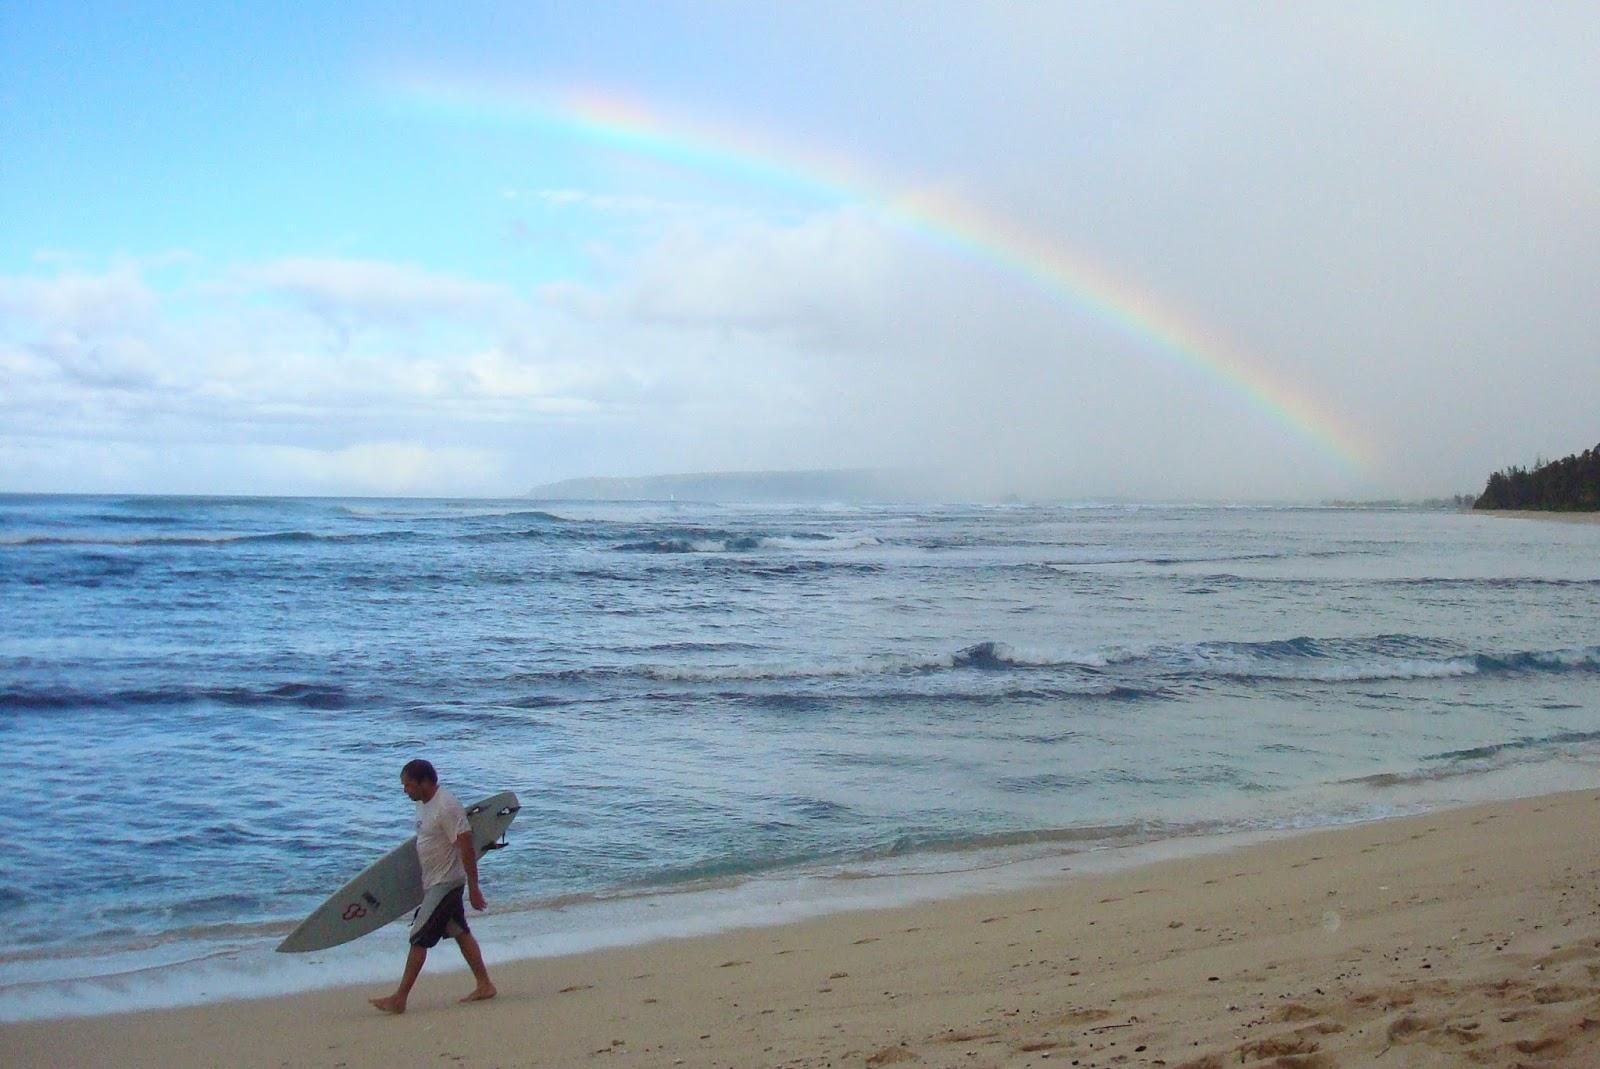 image result for surfer surboard beach ocean rainbow